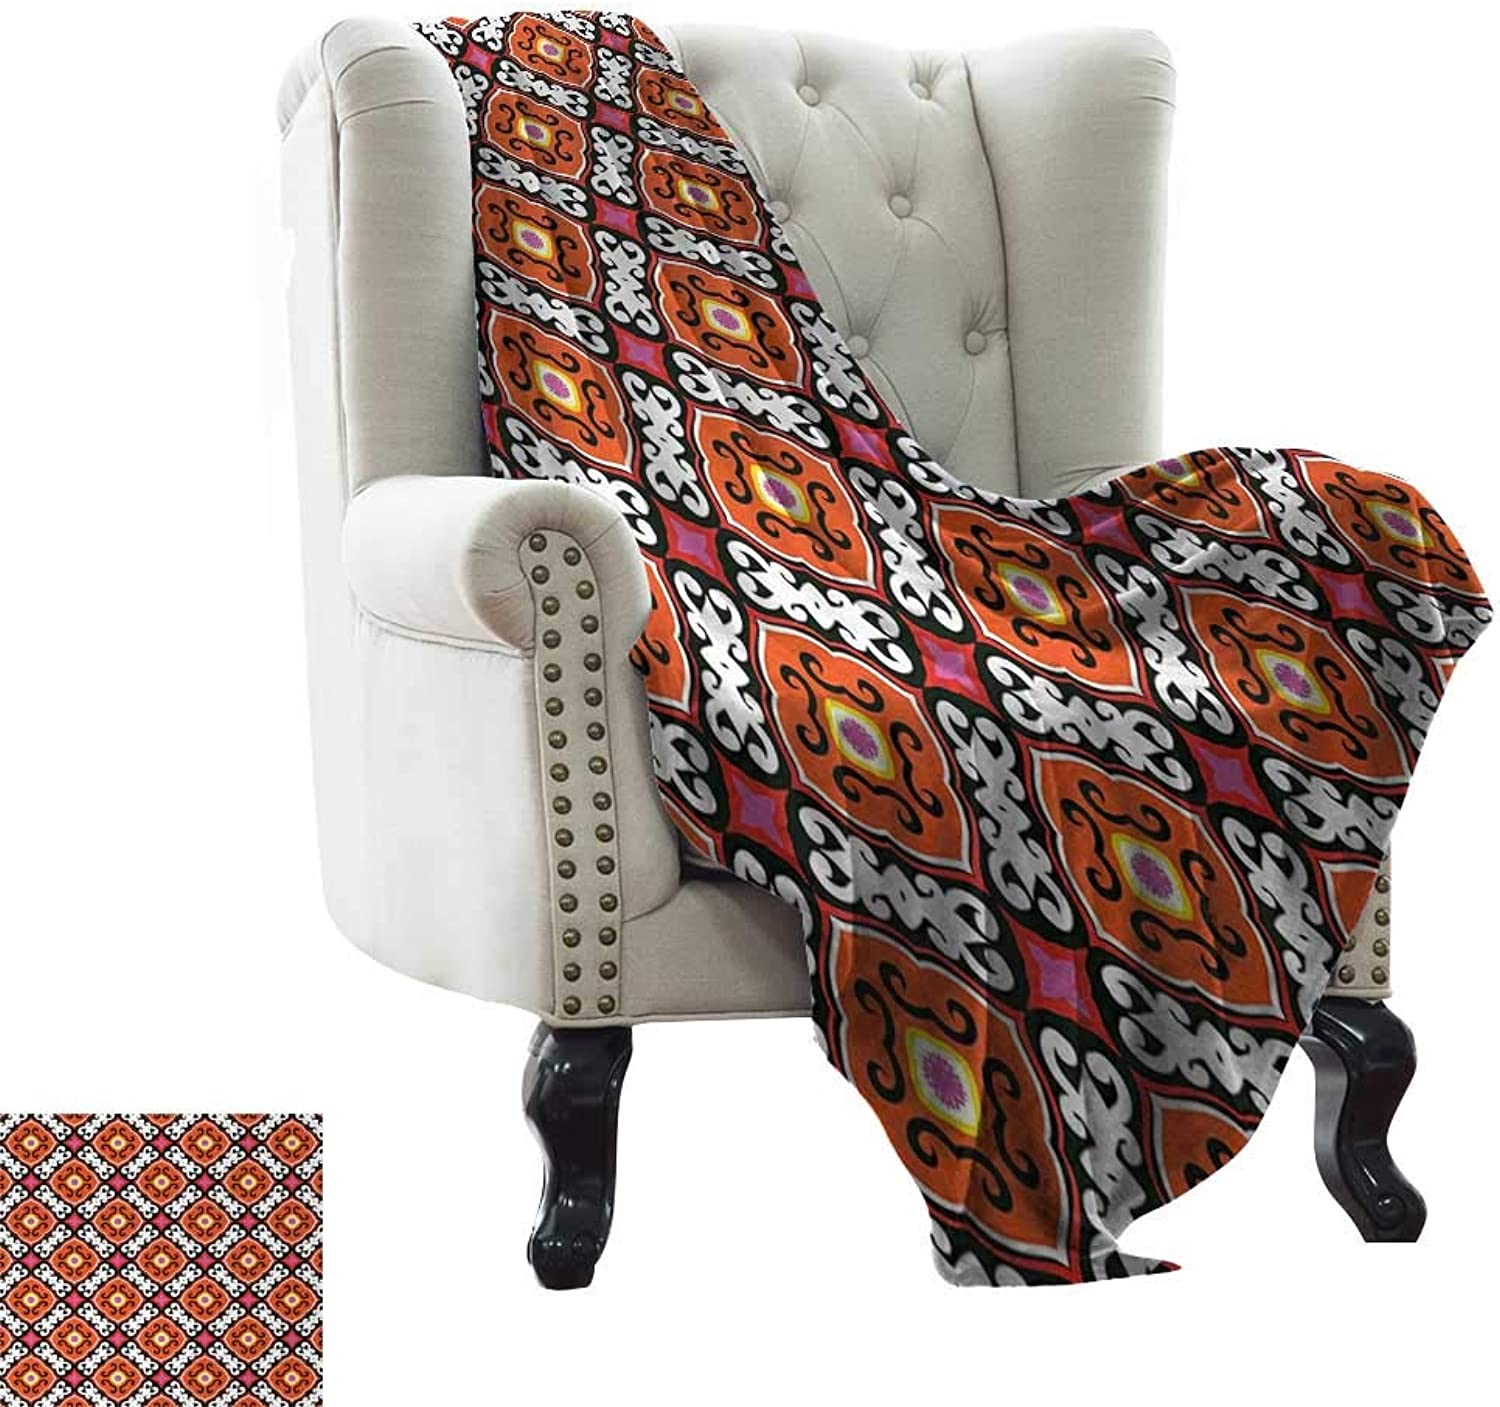 Furry Blanket Turkish Pattern,Bold Floral Motifs with Inspirations from Kazakhstan and Uzbekistan Tiles,Multicolor Weighted for Adults Kids, Better Deeper Sleep 35 x60